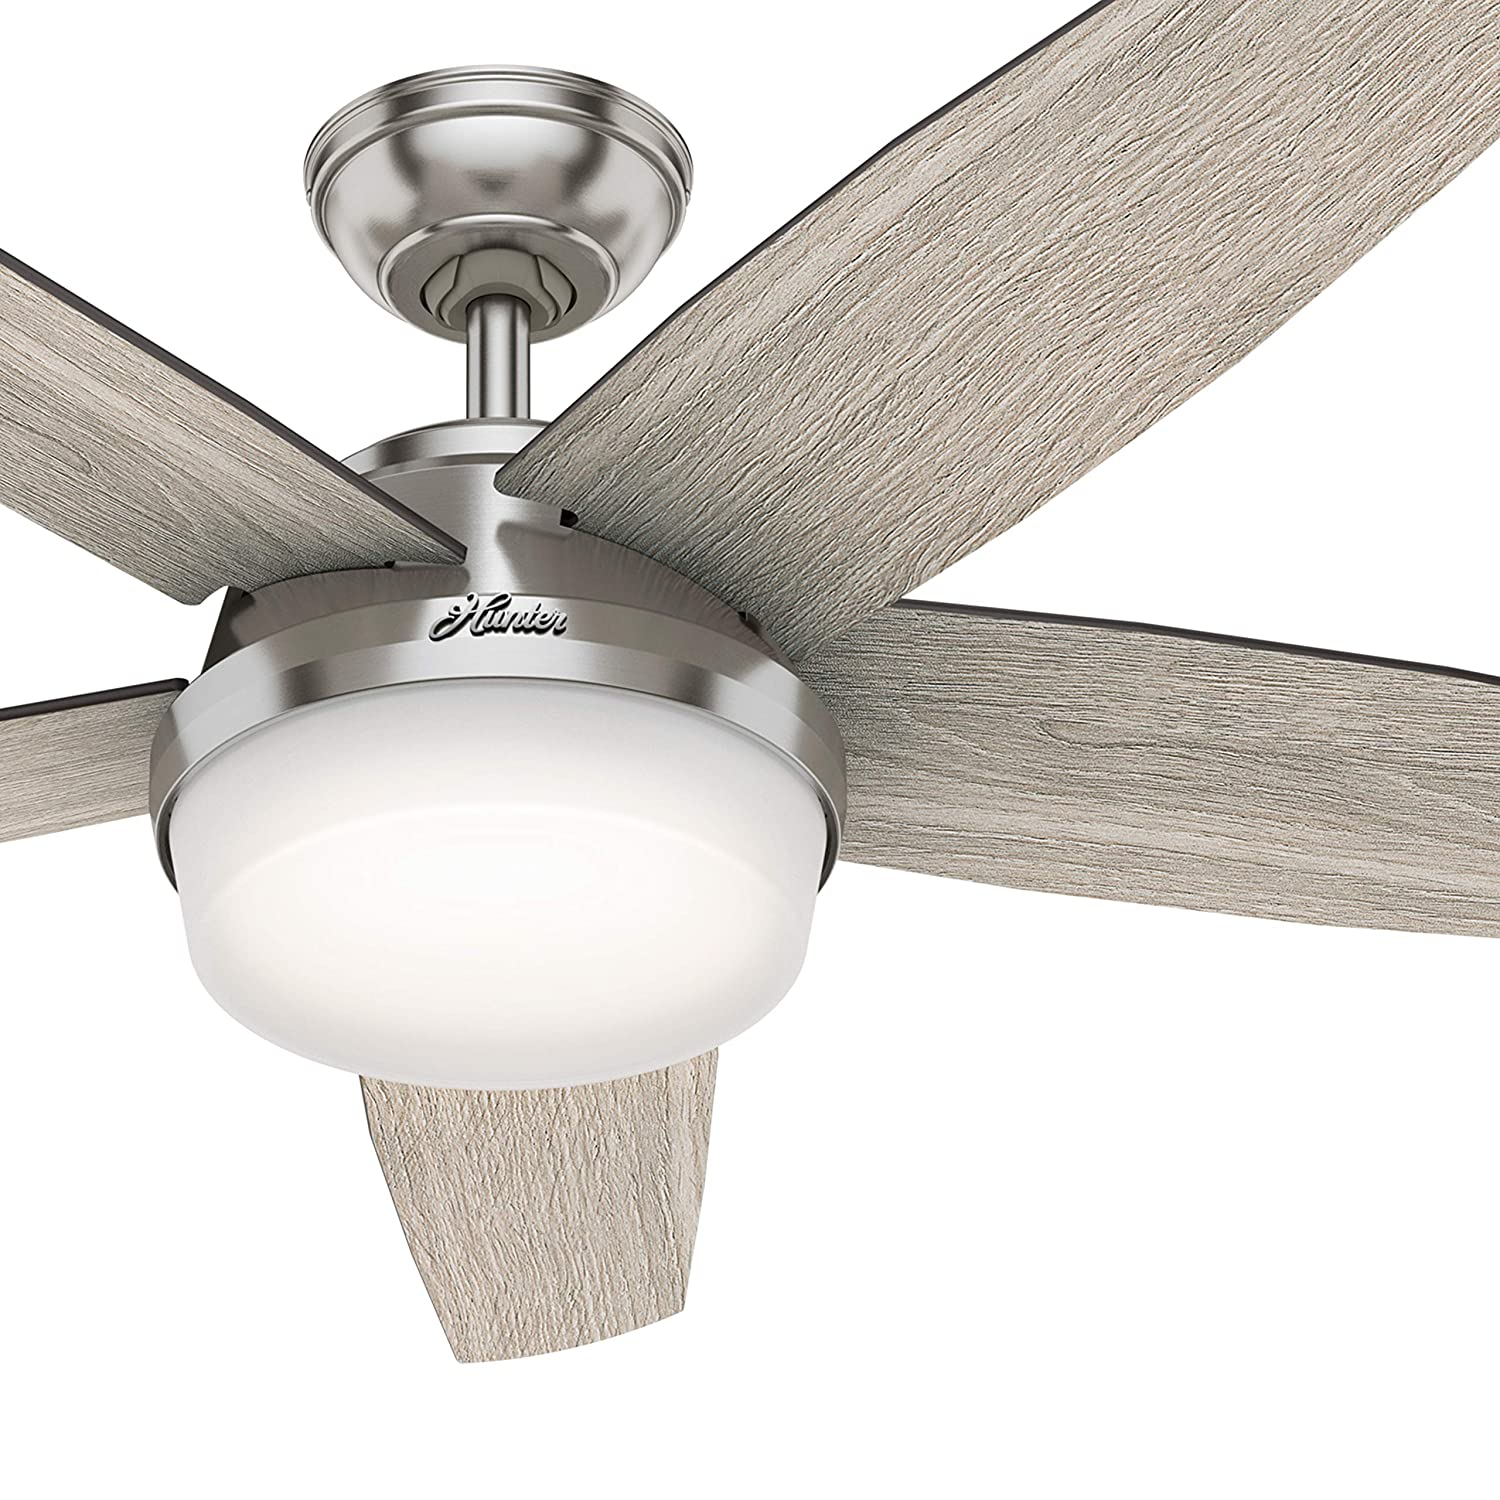 Hunter Fan 52 inch Contemporary Brushed Nickel Indoor Ceiling Fan with Light Kit and Remote Control Renewed